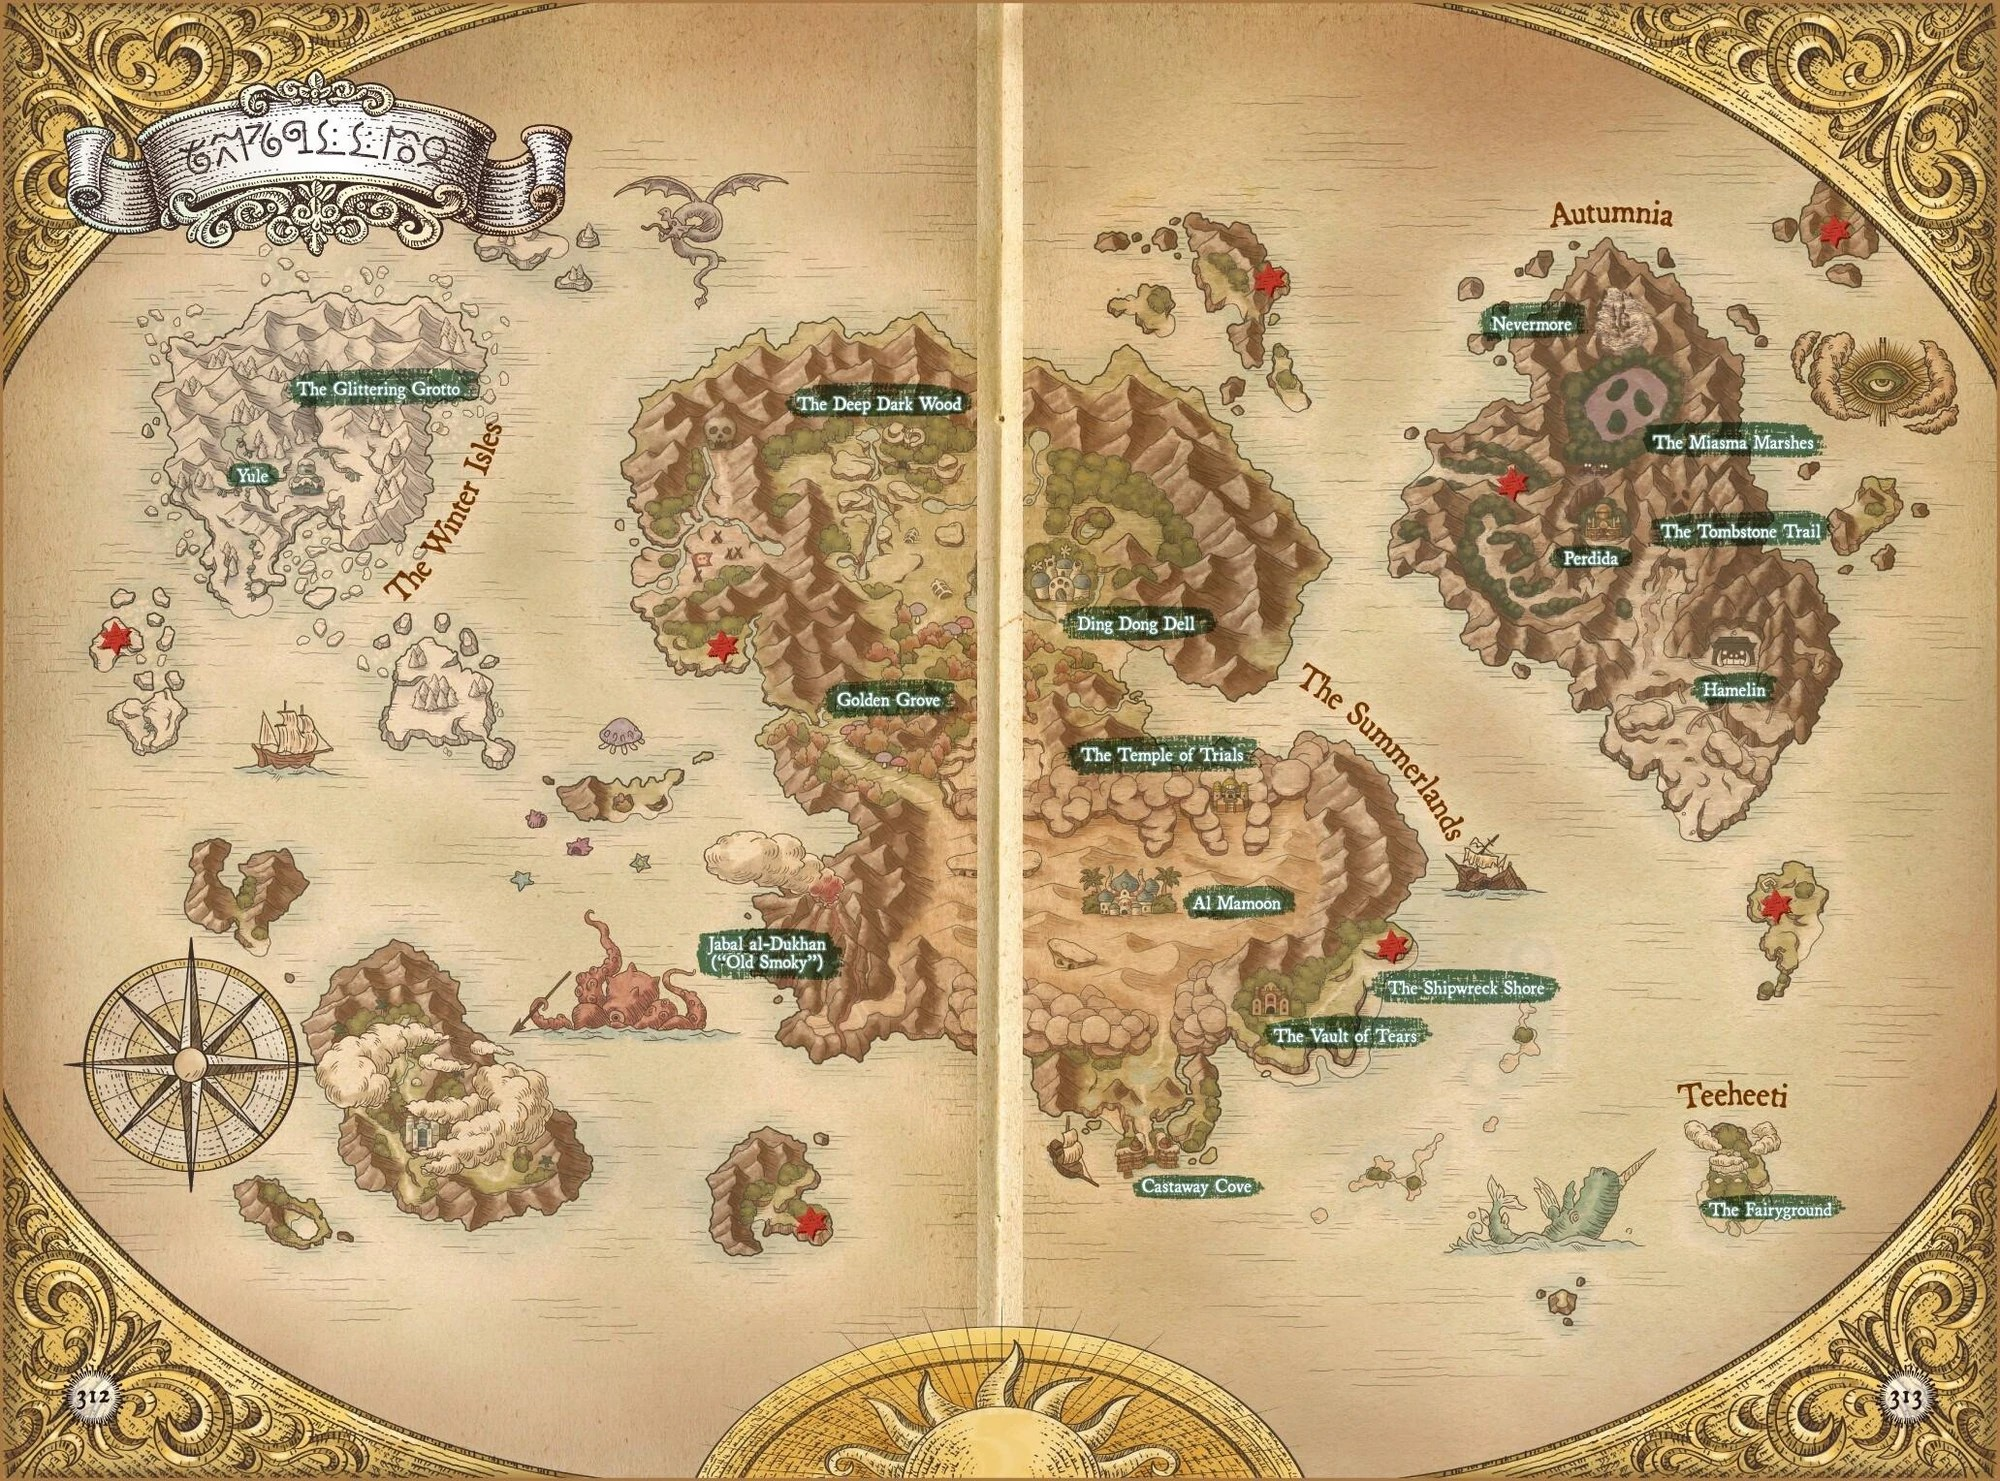 20+ Suikoden 2 Town Map Pictures and Ideas on Meta Networks